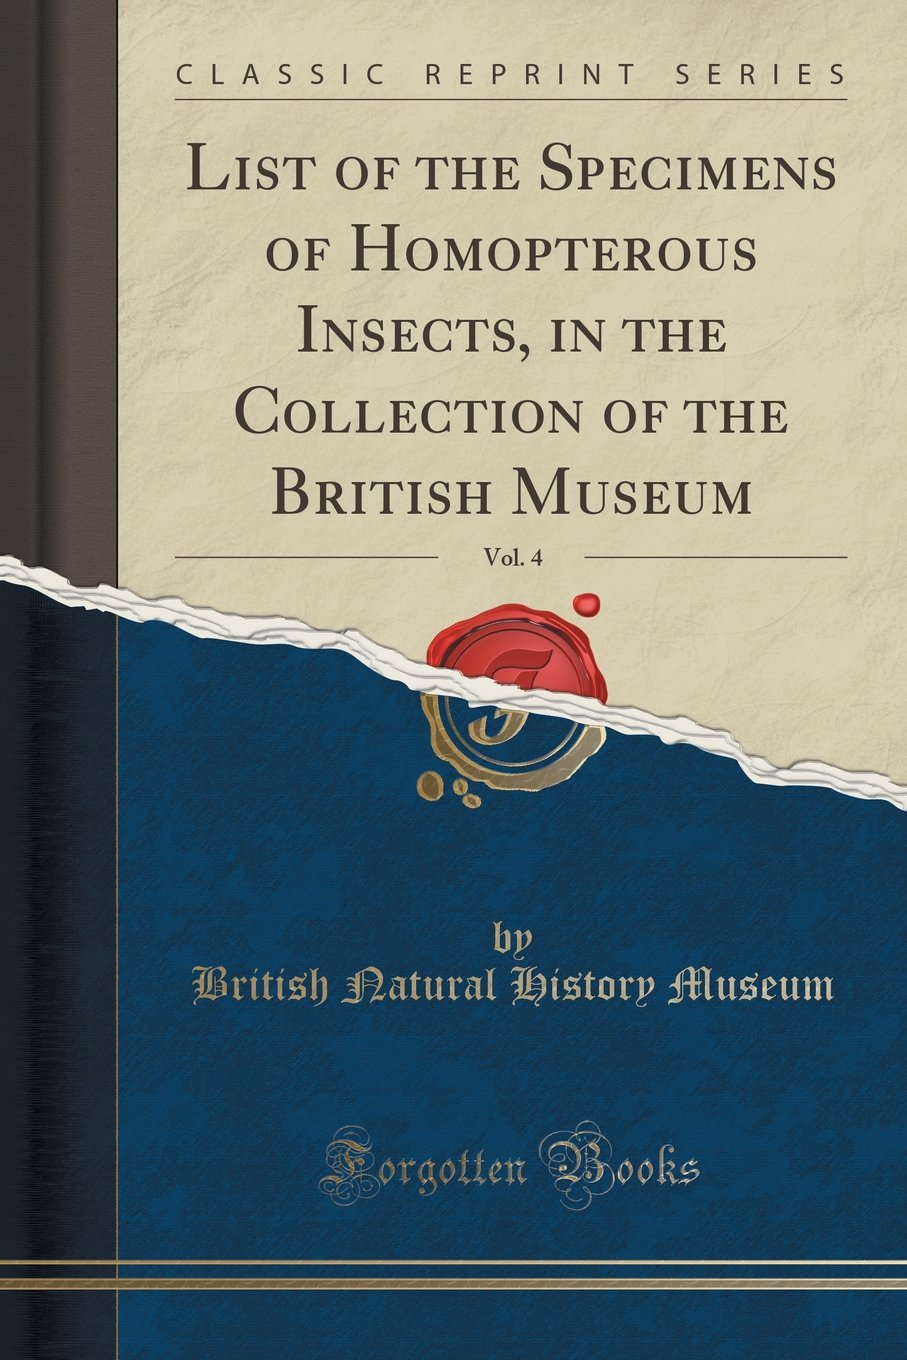 Download List of the Specimens of Homopterous Insects, in the Collection of the British Museum, Vol. 4 (Classic Reprint) pdf